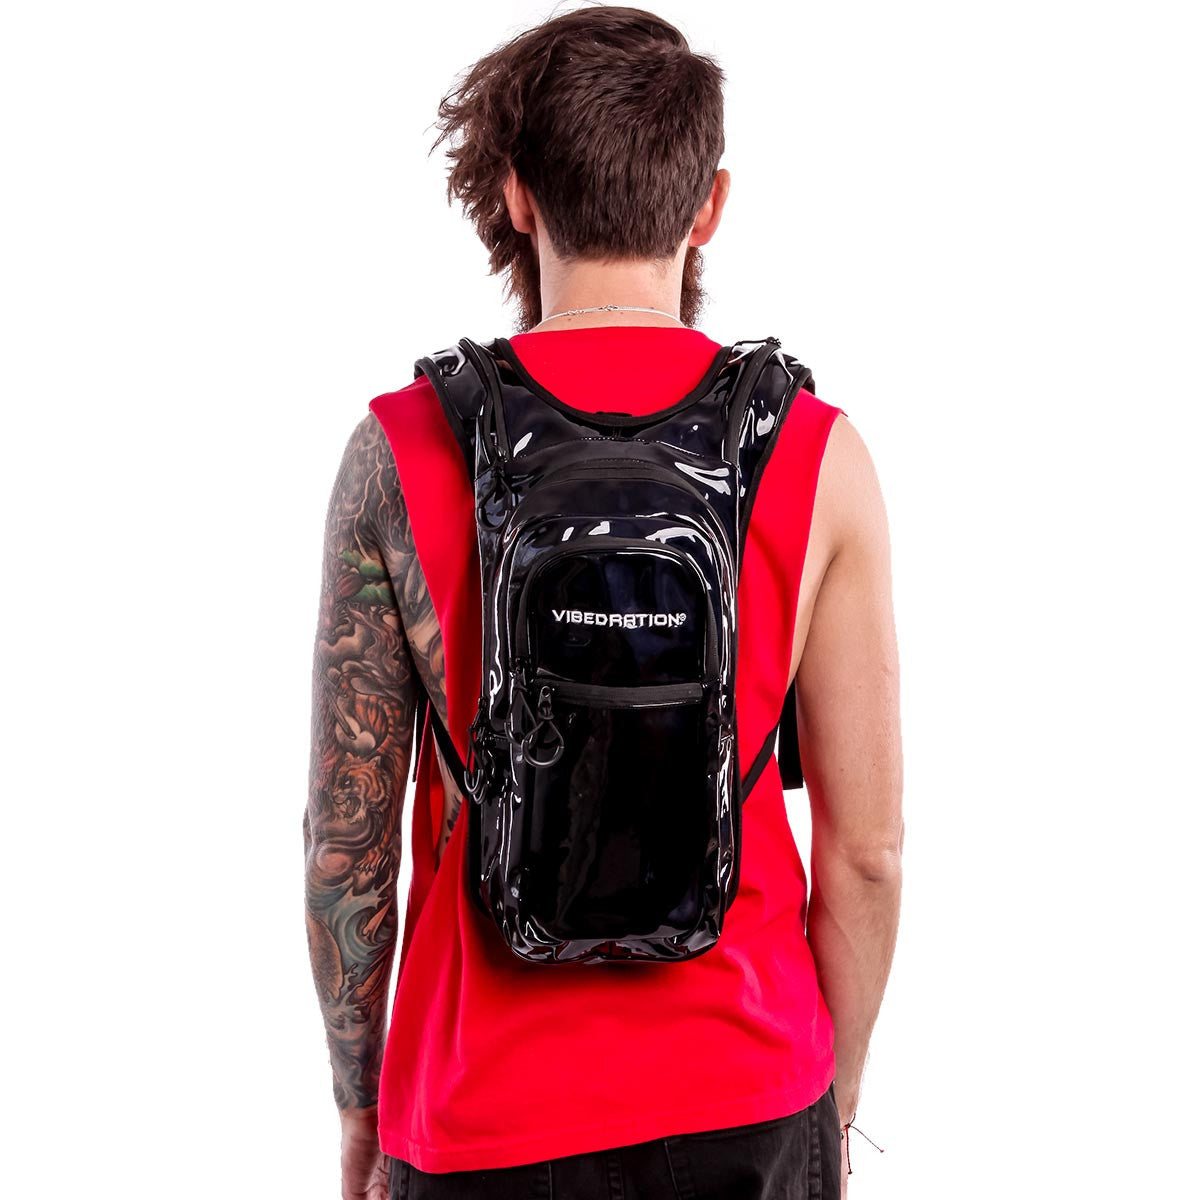 Male wearing Black hydration pack